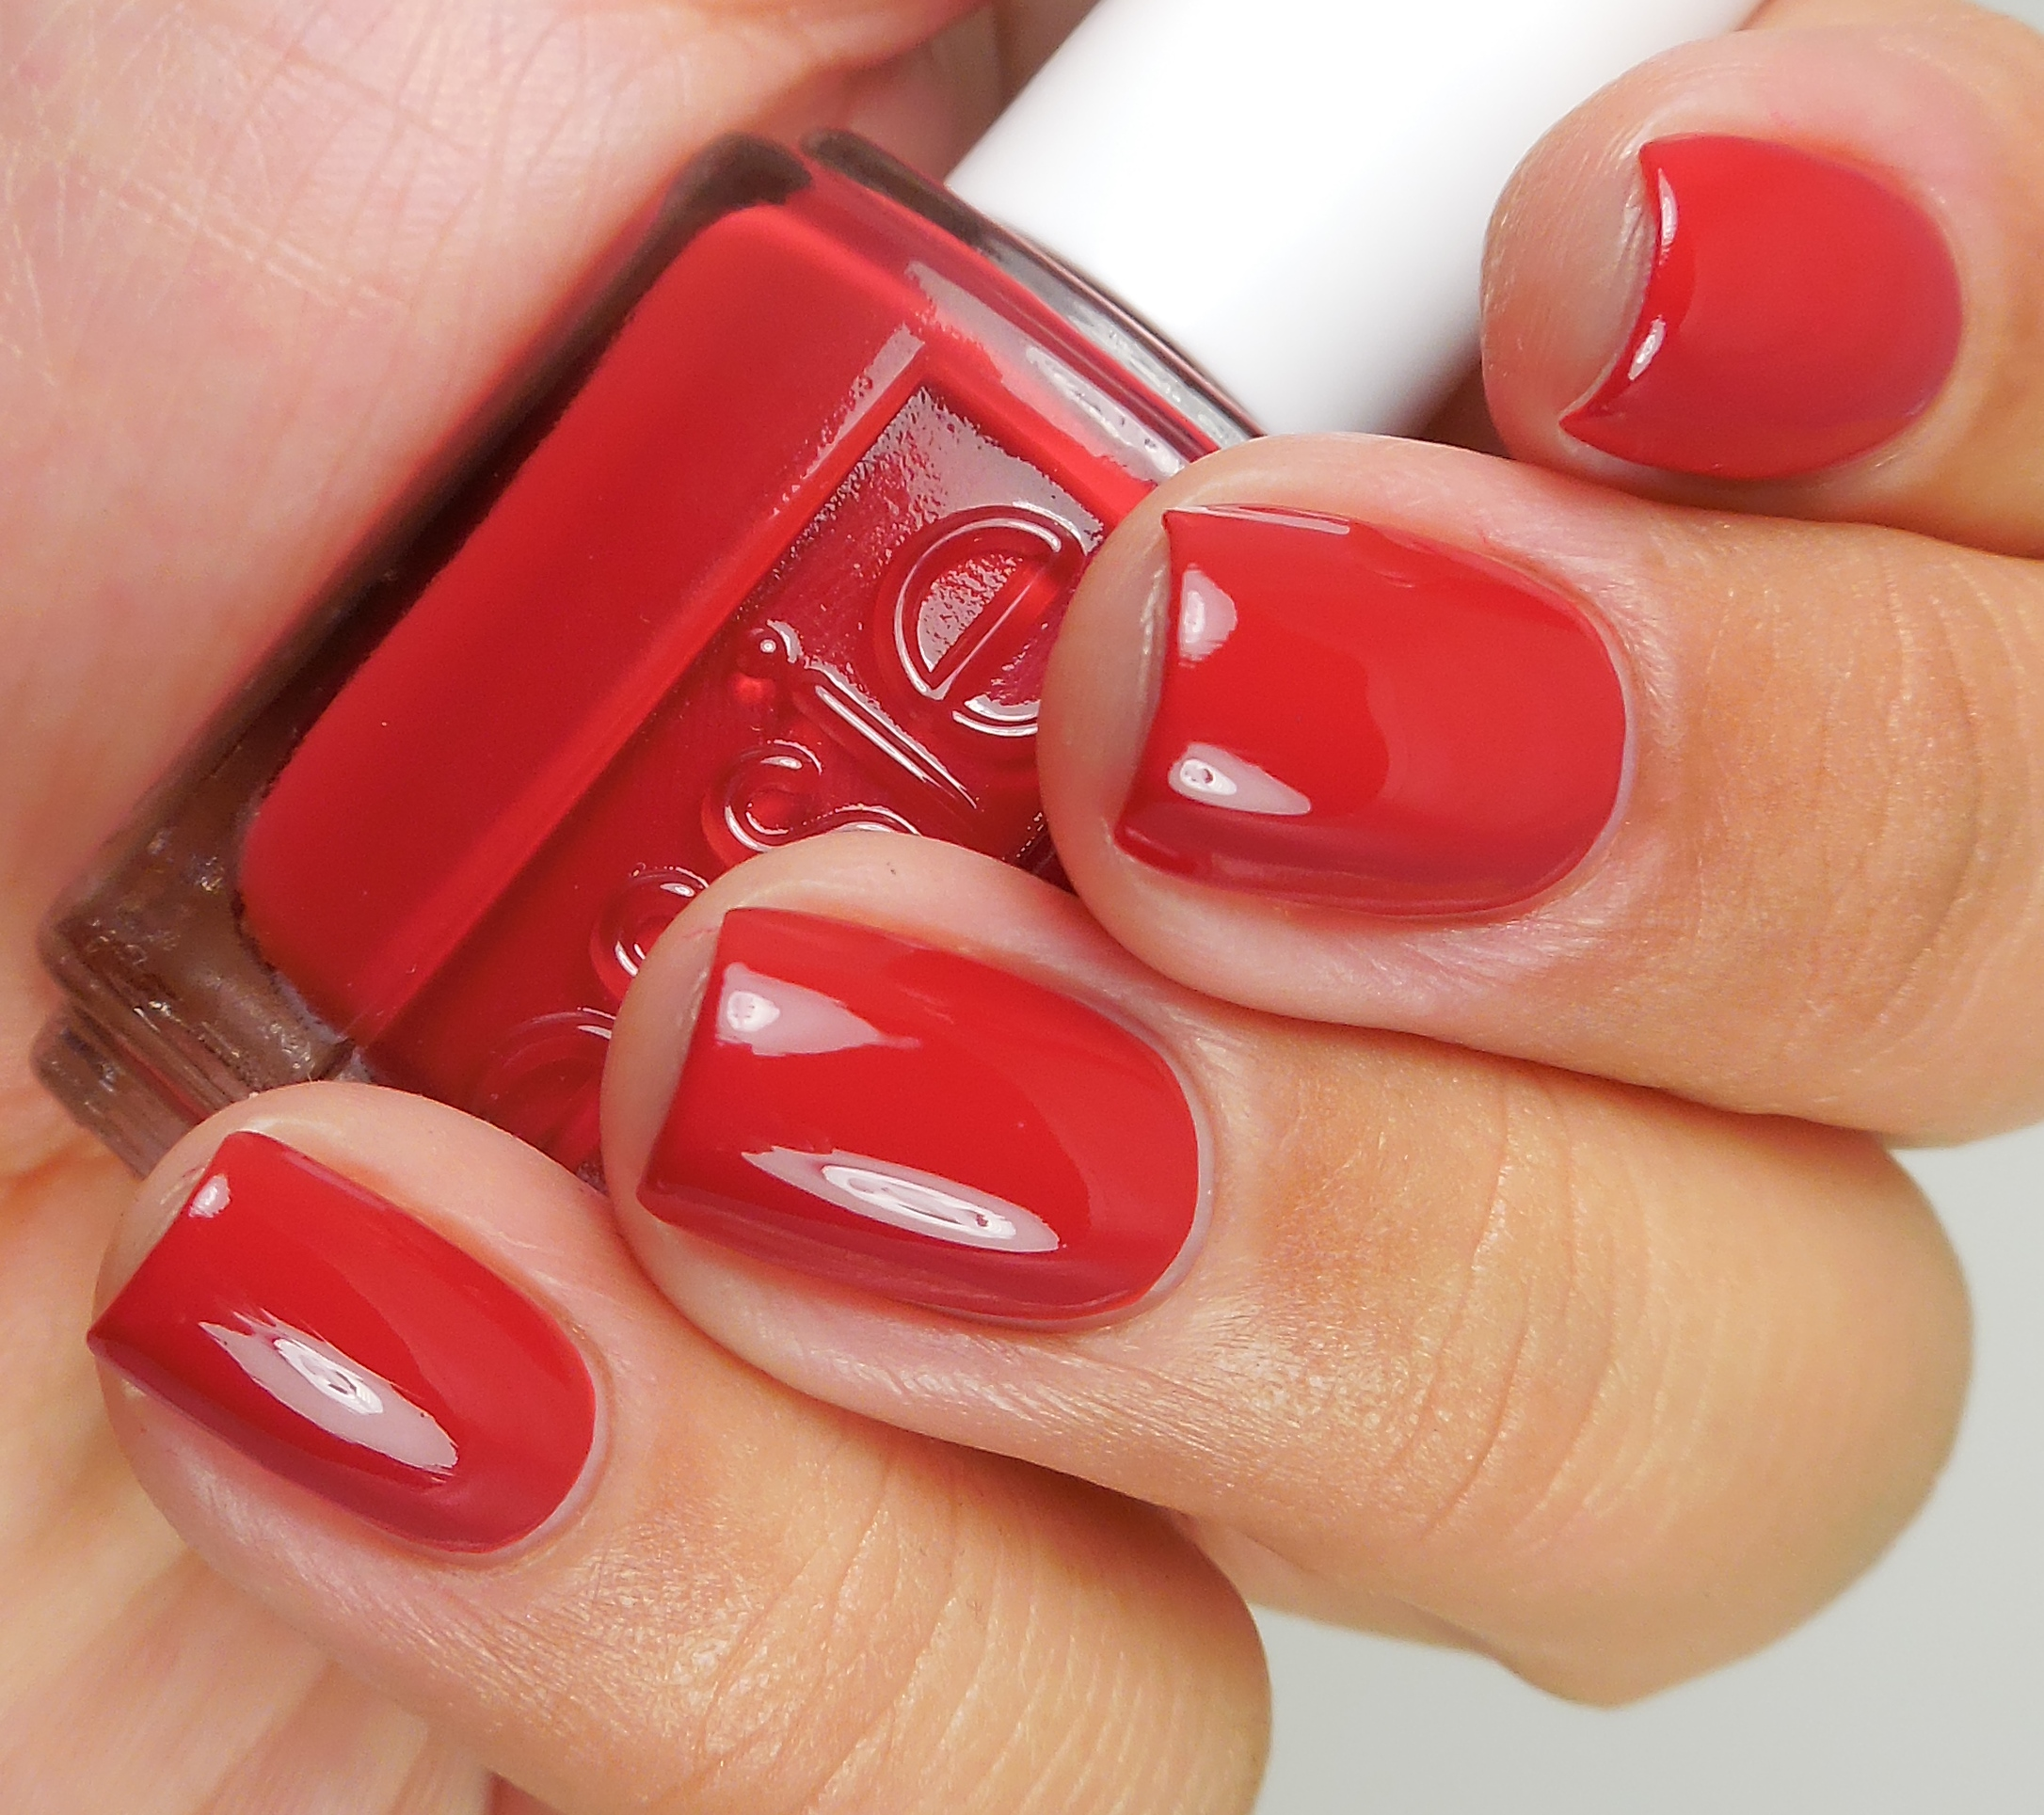 Essie Archives - Of Life and Lacquer